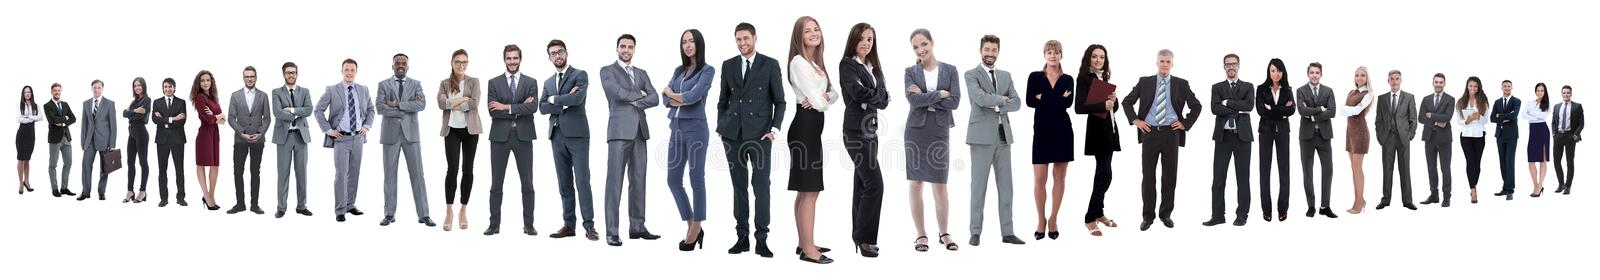 Panoramic photo of a group of confident business people. Isolated on white background royalty free stock images